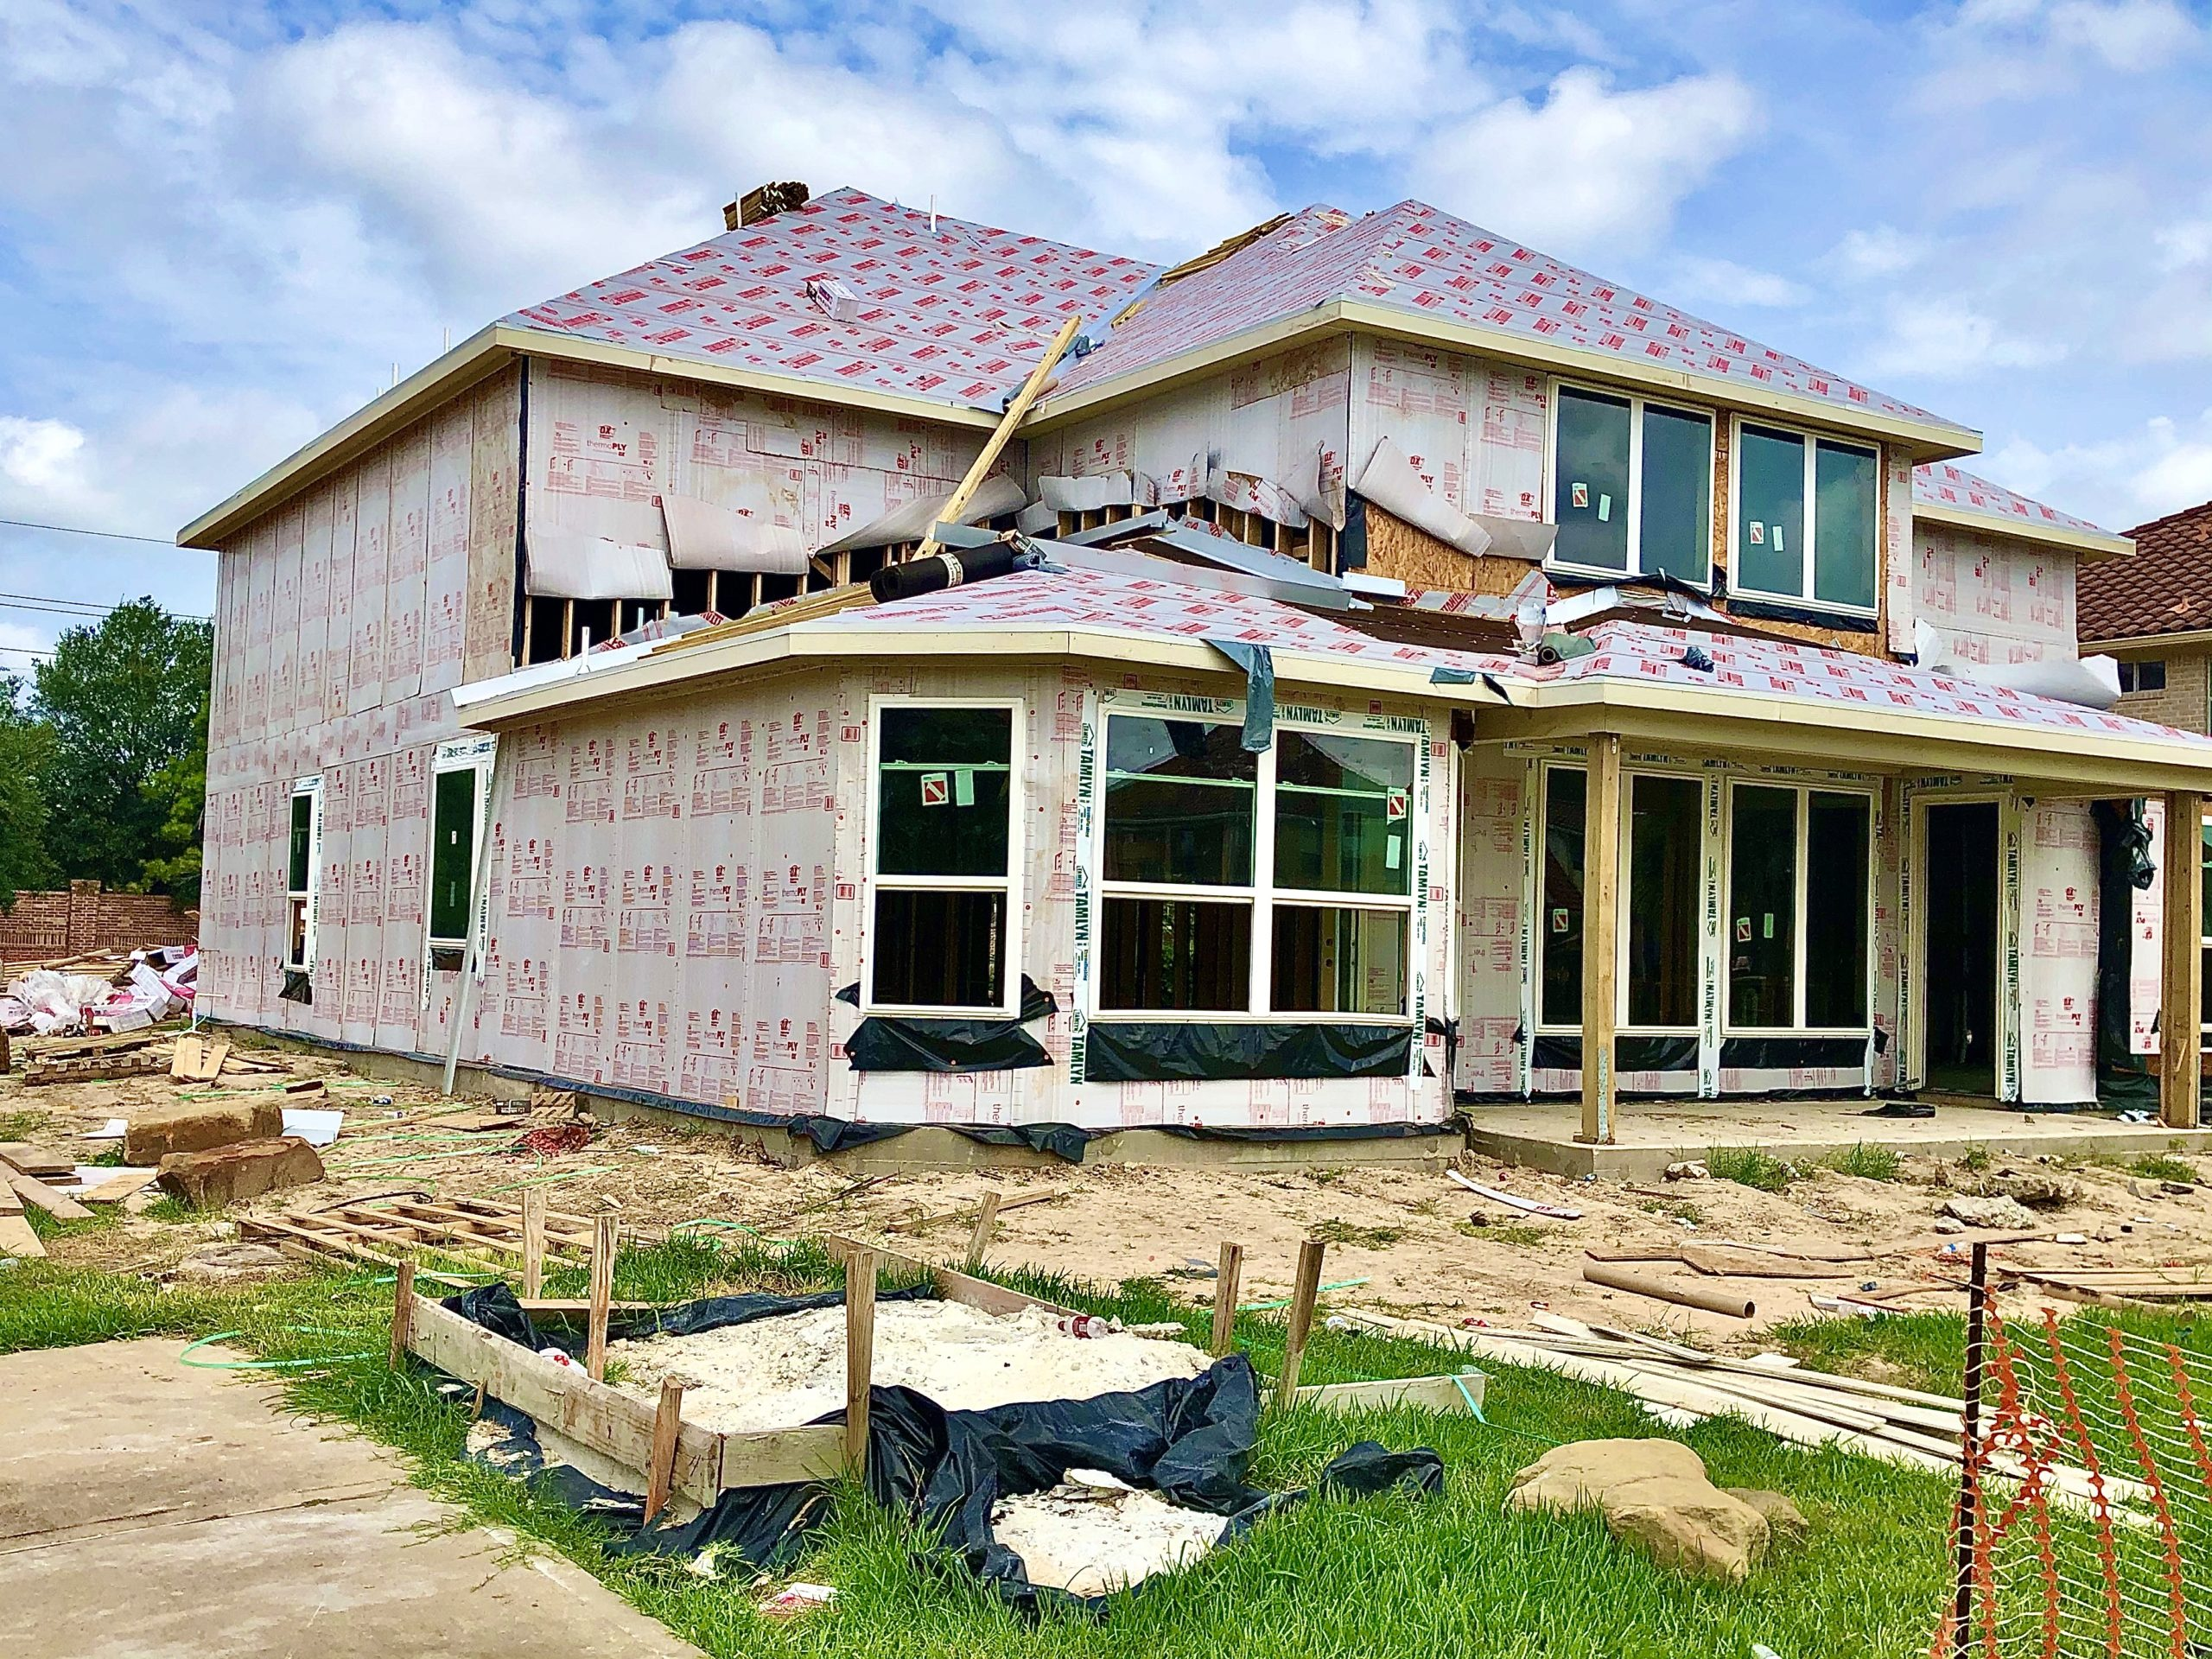 Weather Conditions That Can Affect Your Home